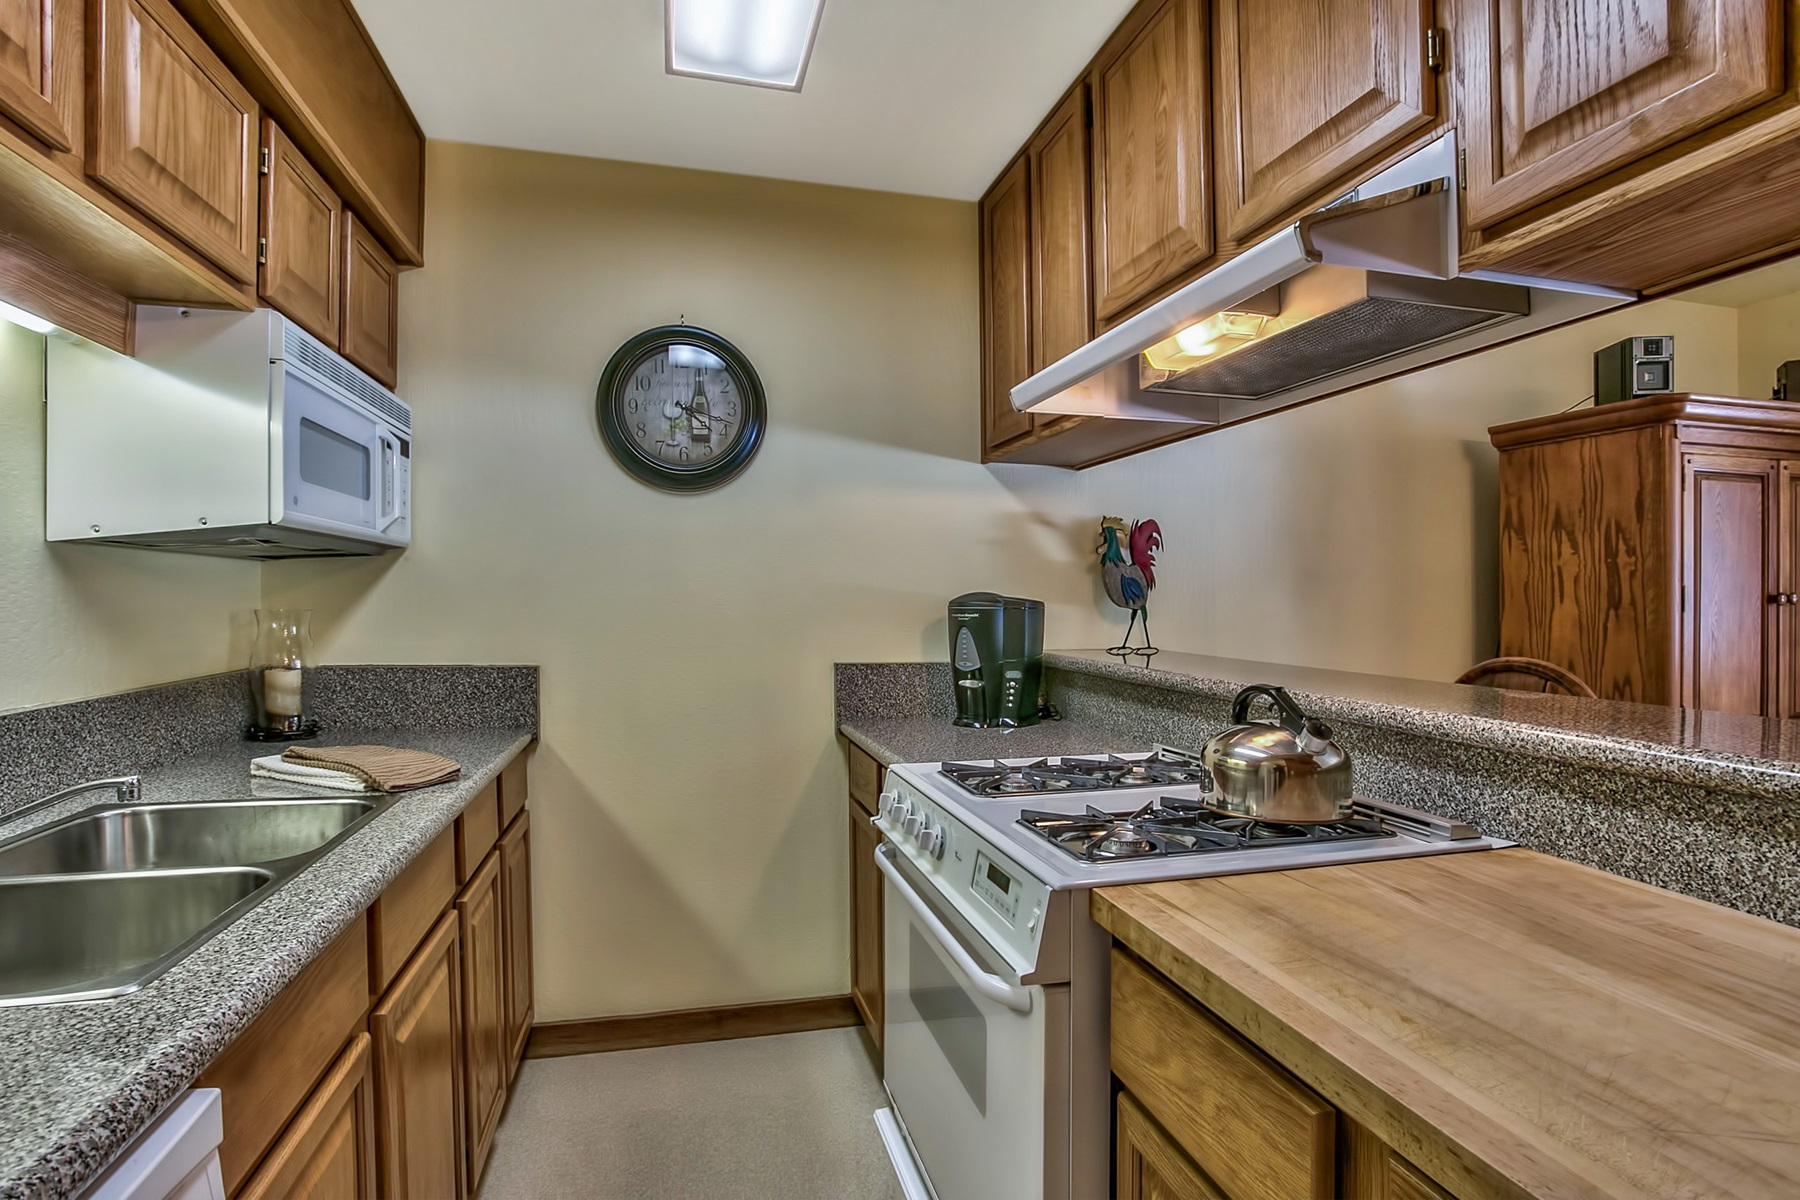 Additional photo for property listing at 4037 Ski View  Truckee, California 96161 United States